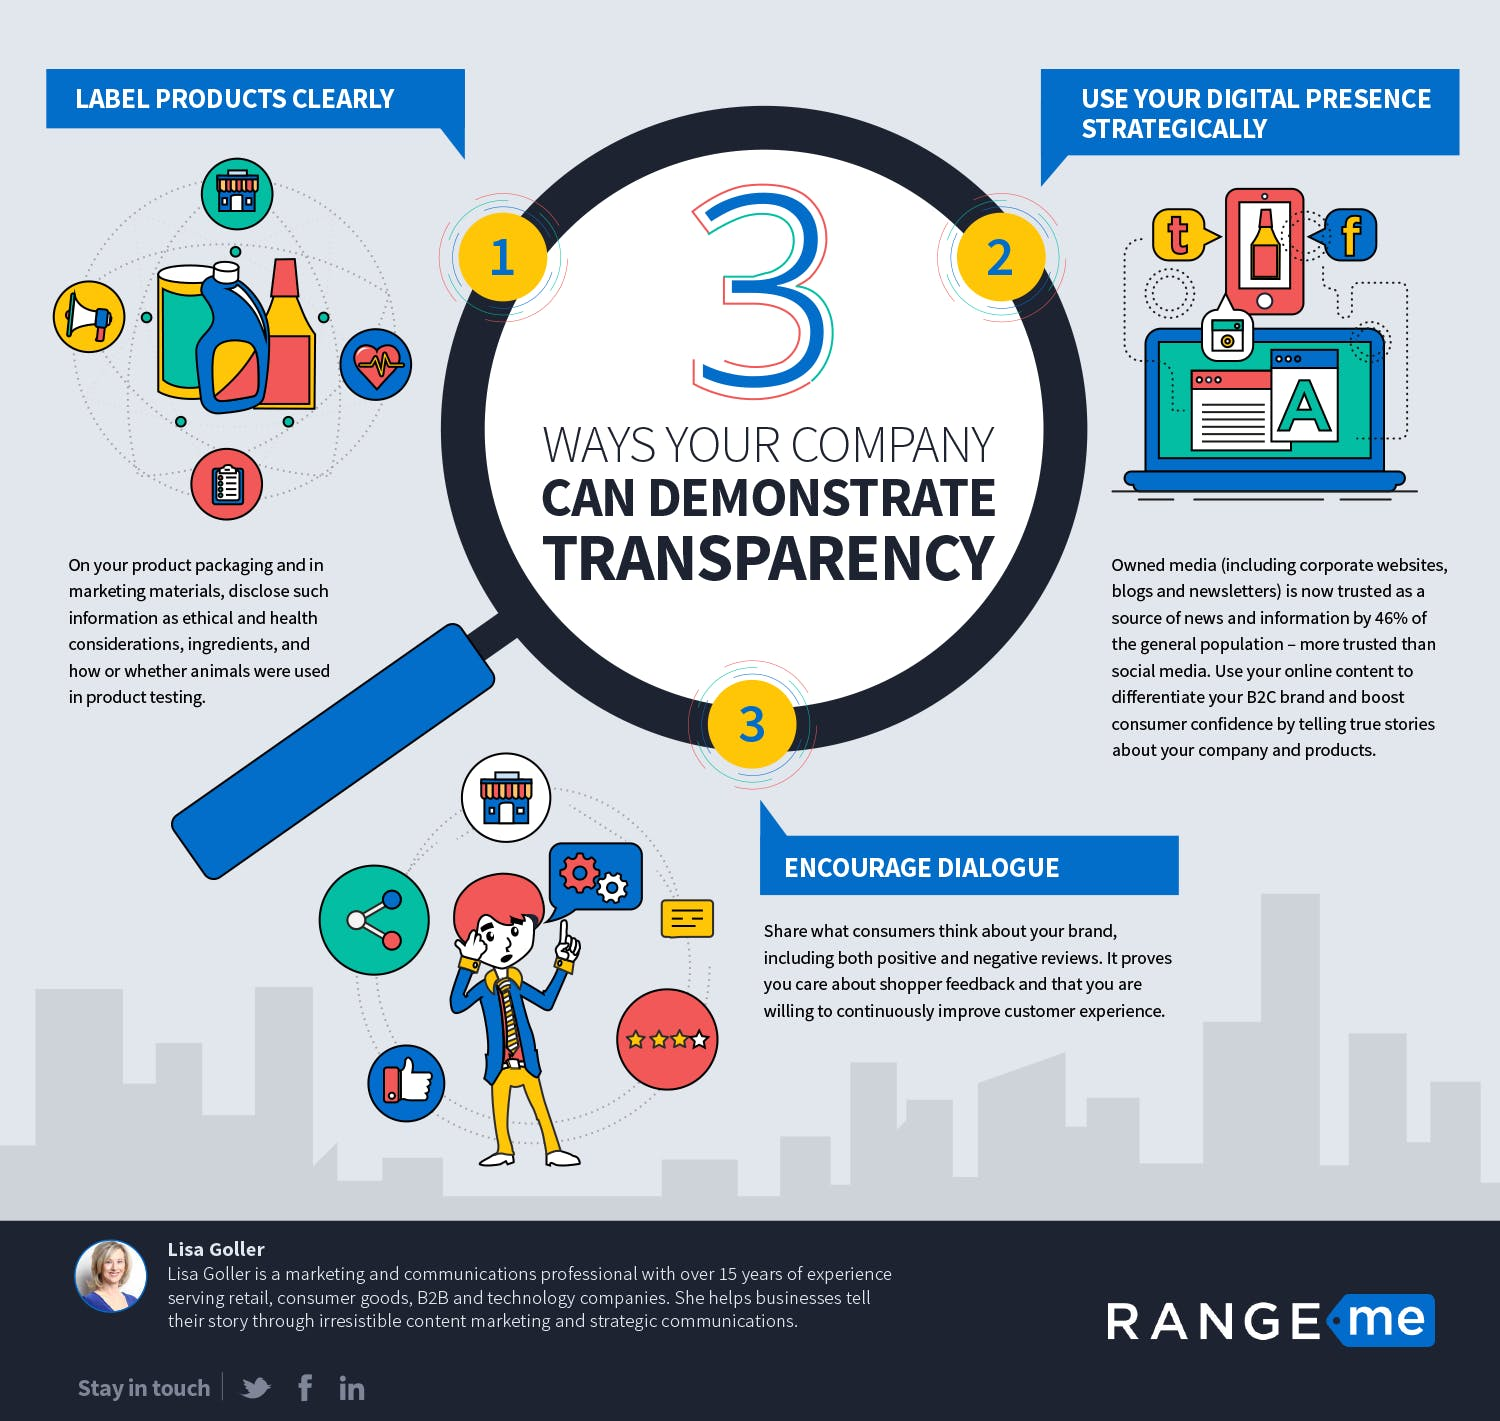 3-Ways-Your-Company-Can-Demonstrate-Transparency